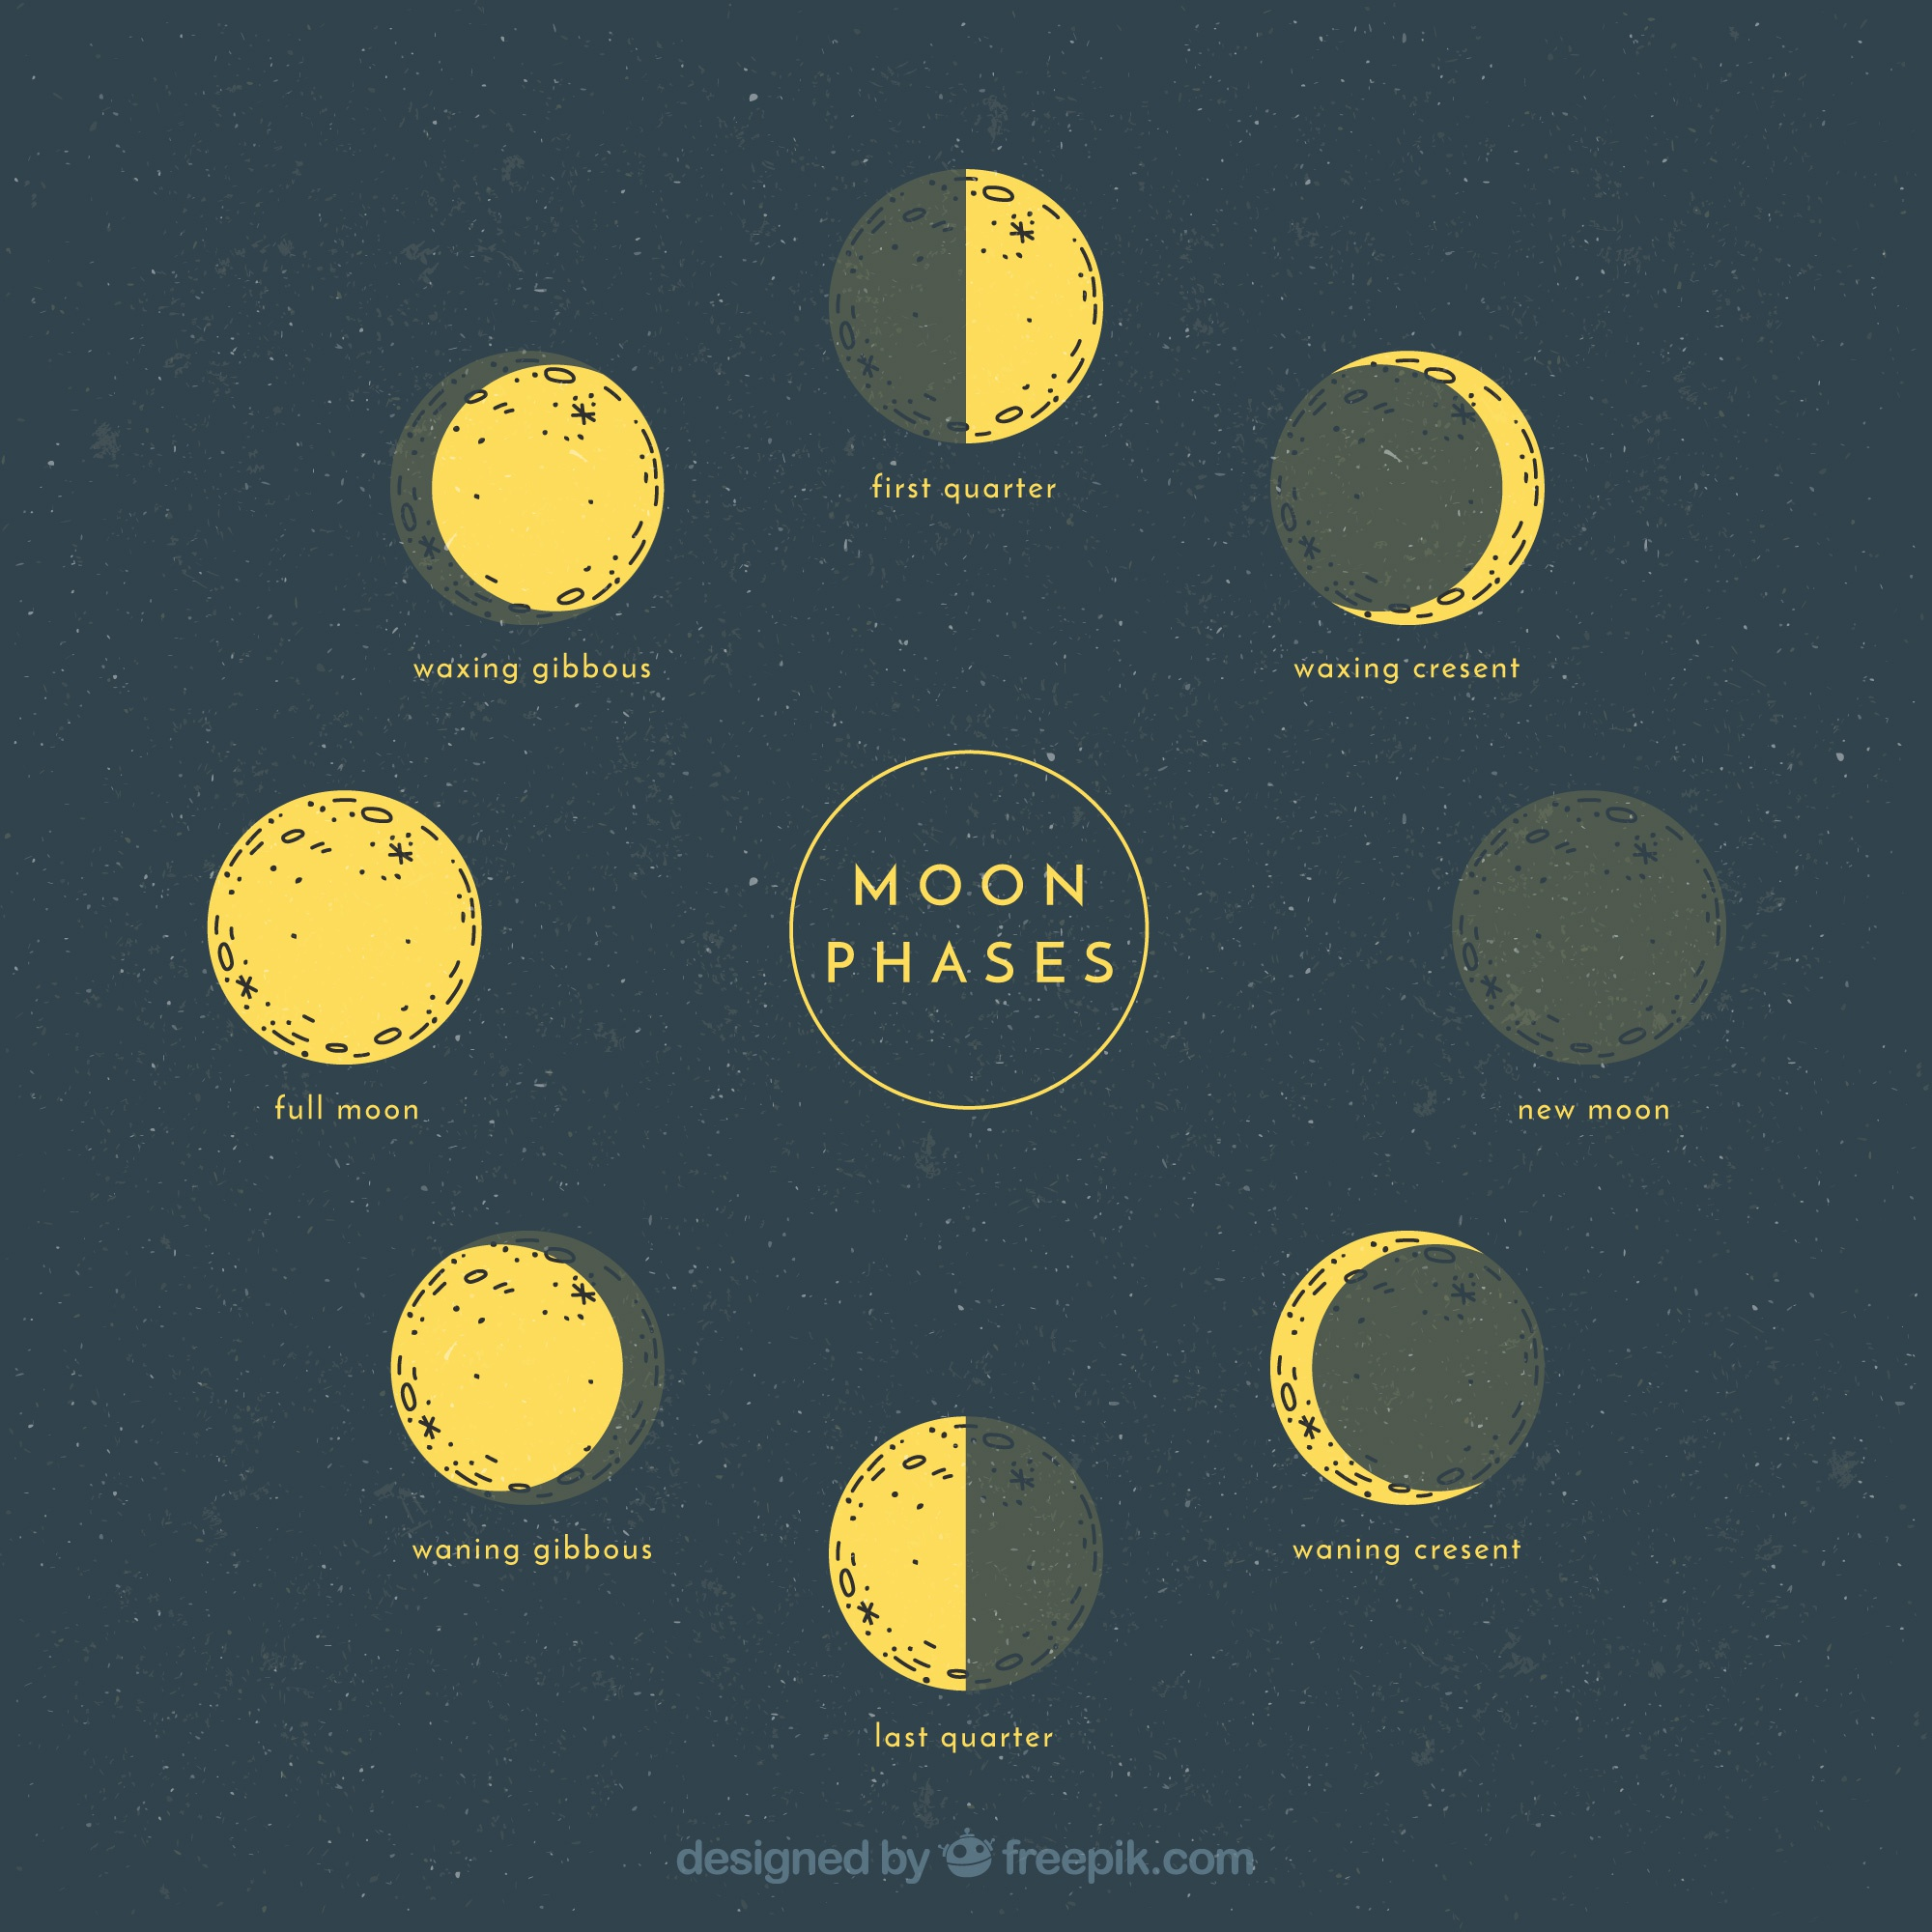 Sketches of lunar phases